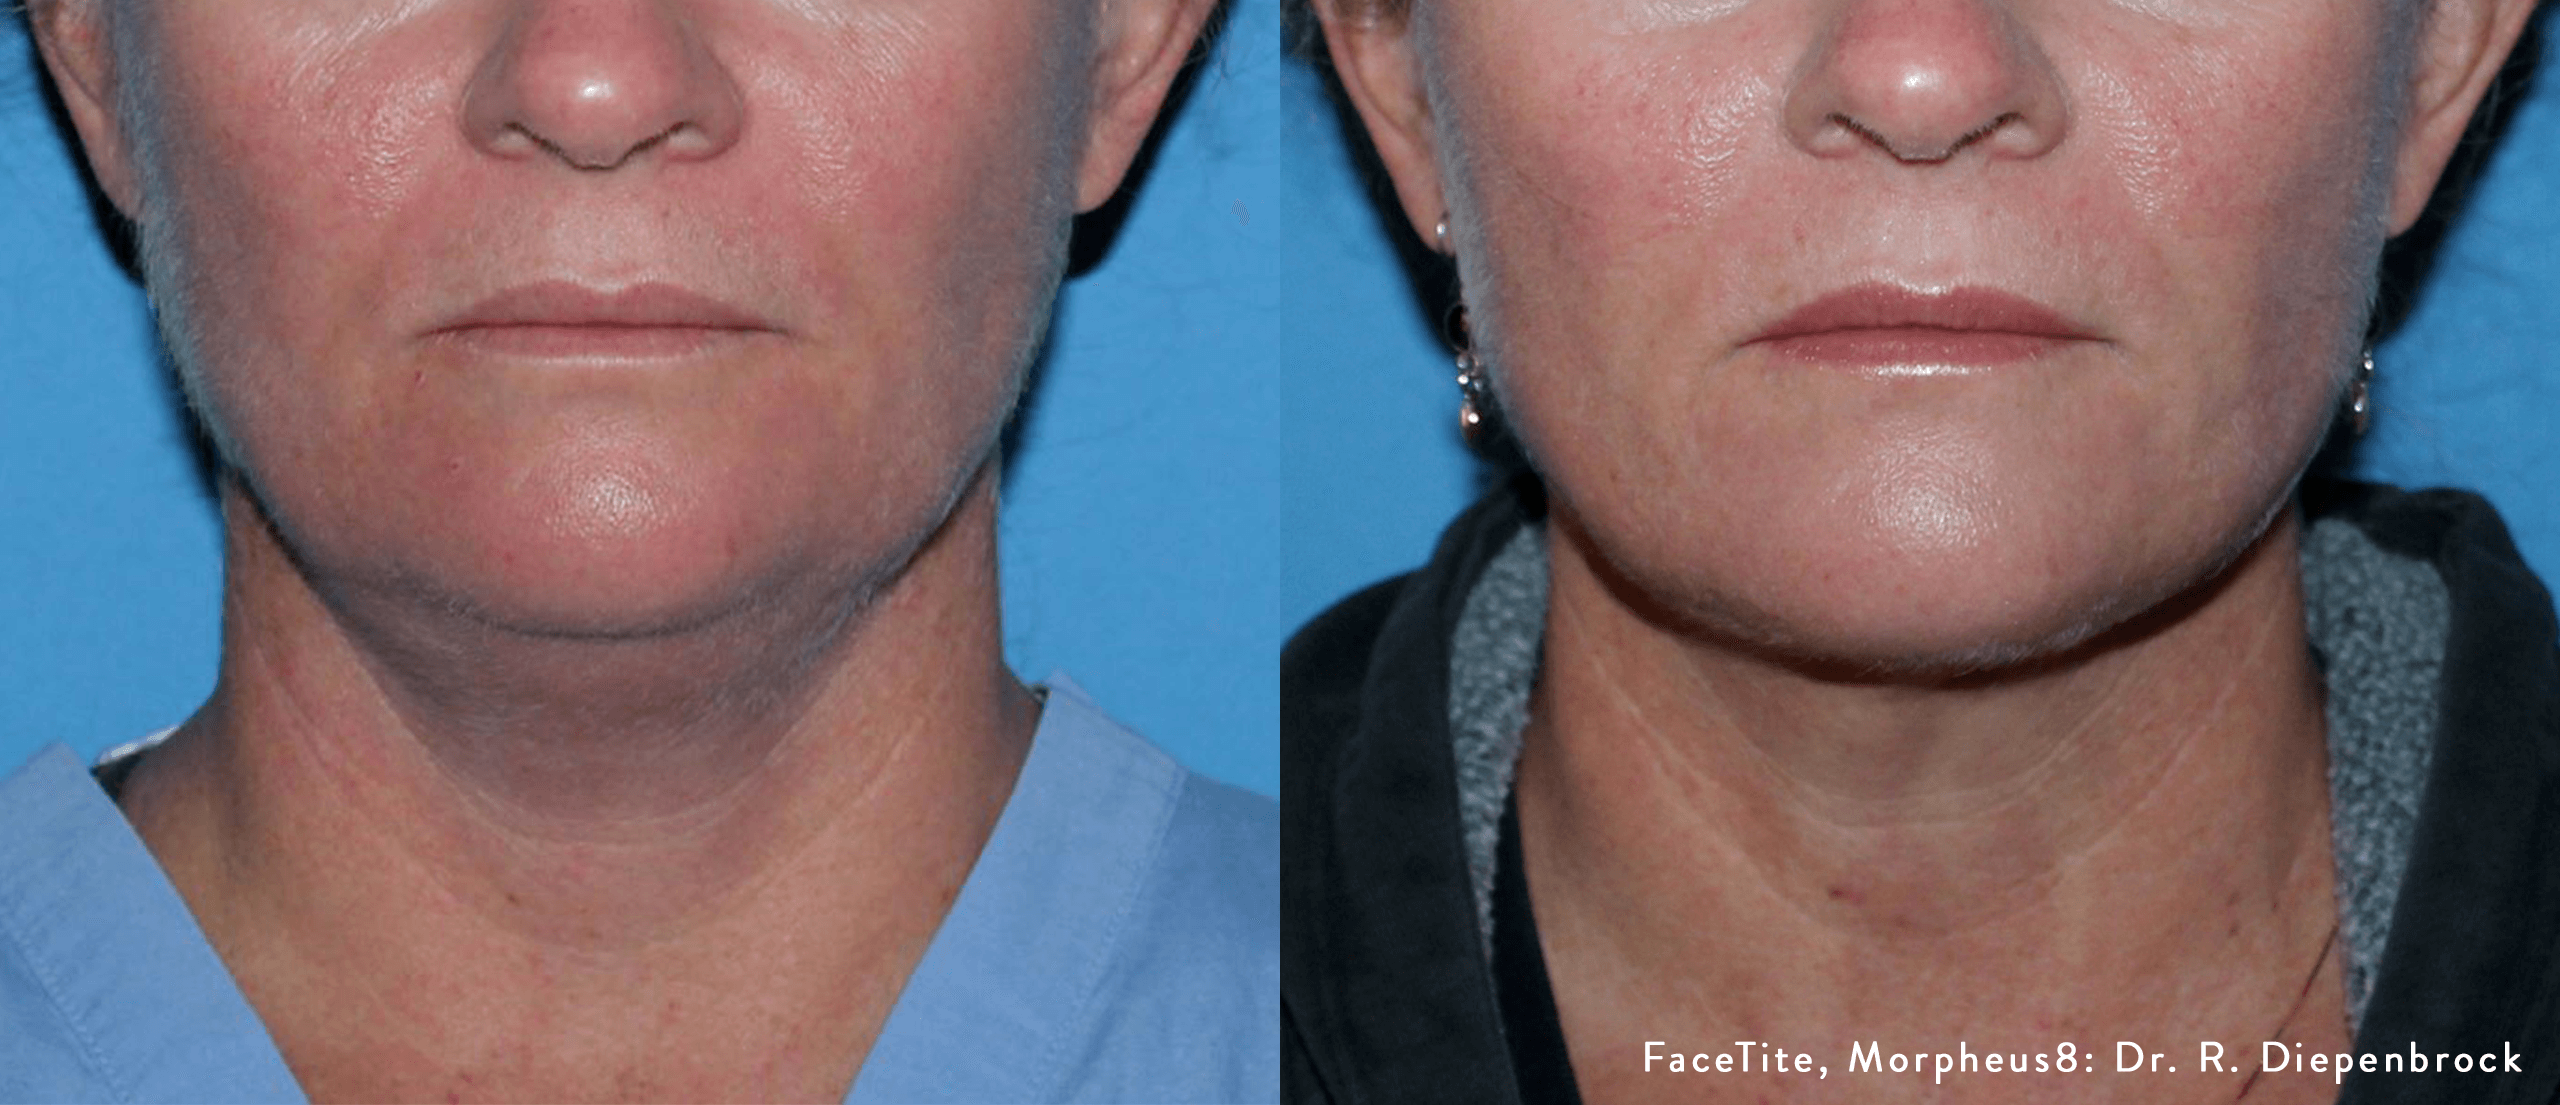 EmbraceRF results before and after